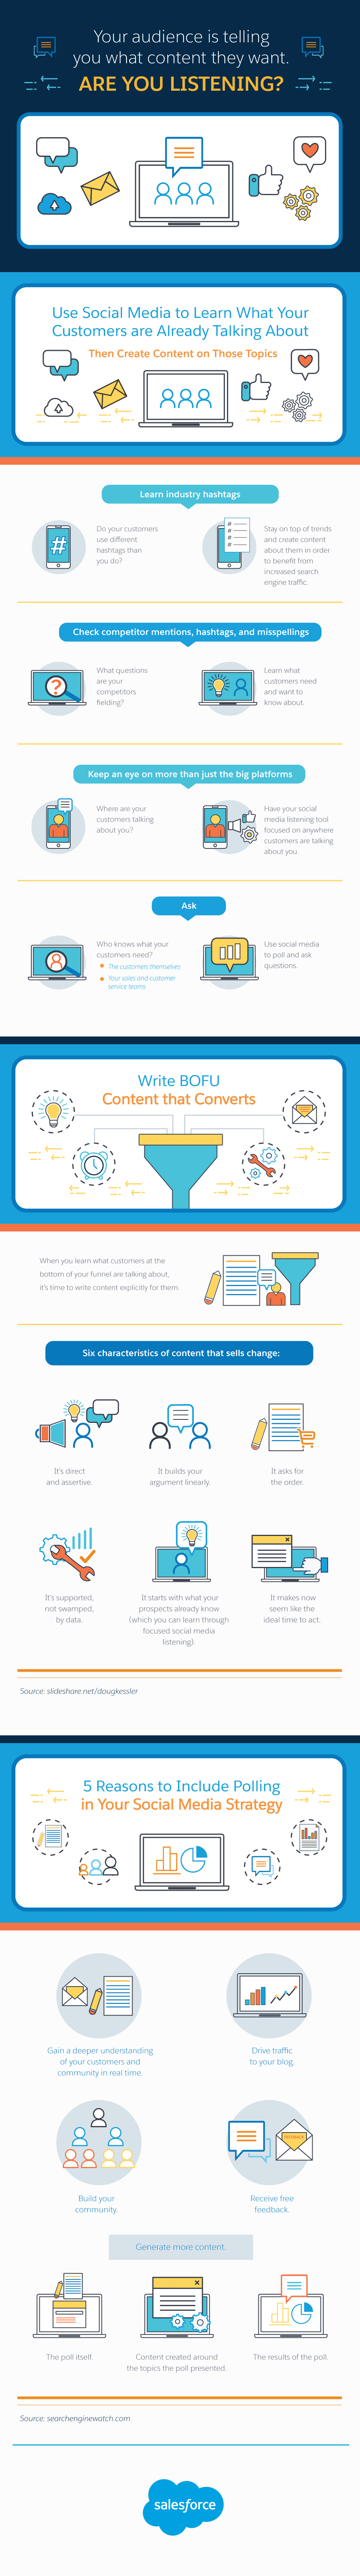 Want to know how to create content your audience eats up? You just need to know how to listen. That's what you'll learn from these infographics!